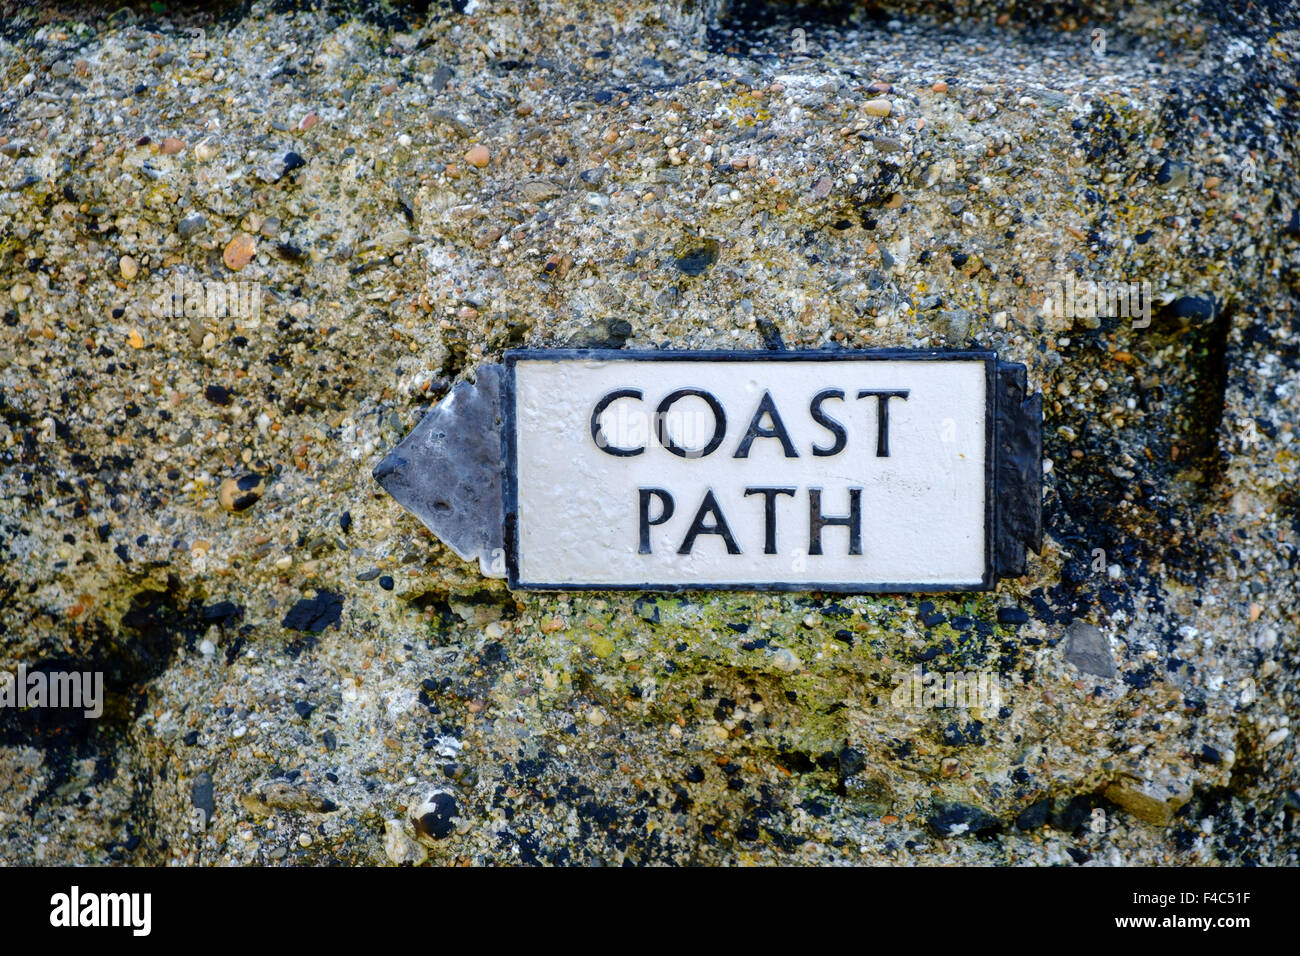 Coast path sign on the South West Coast Path, Lizard Peninsula, Cornwall, England, UK - Stock Image